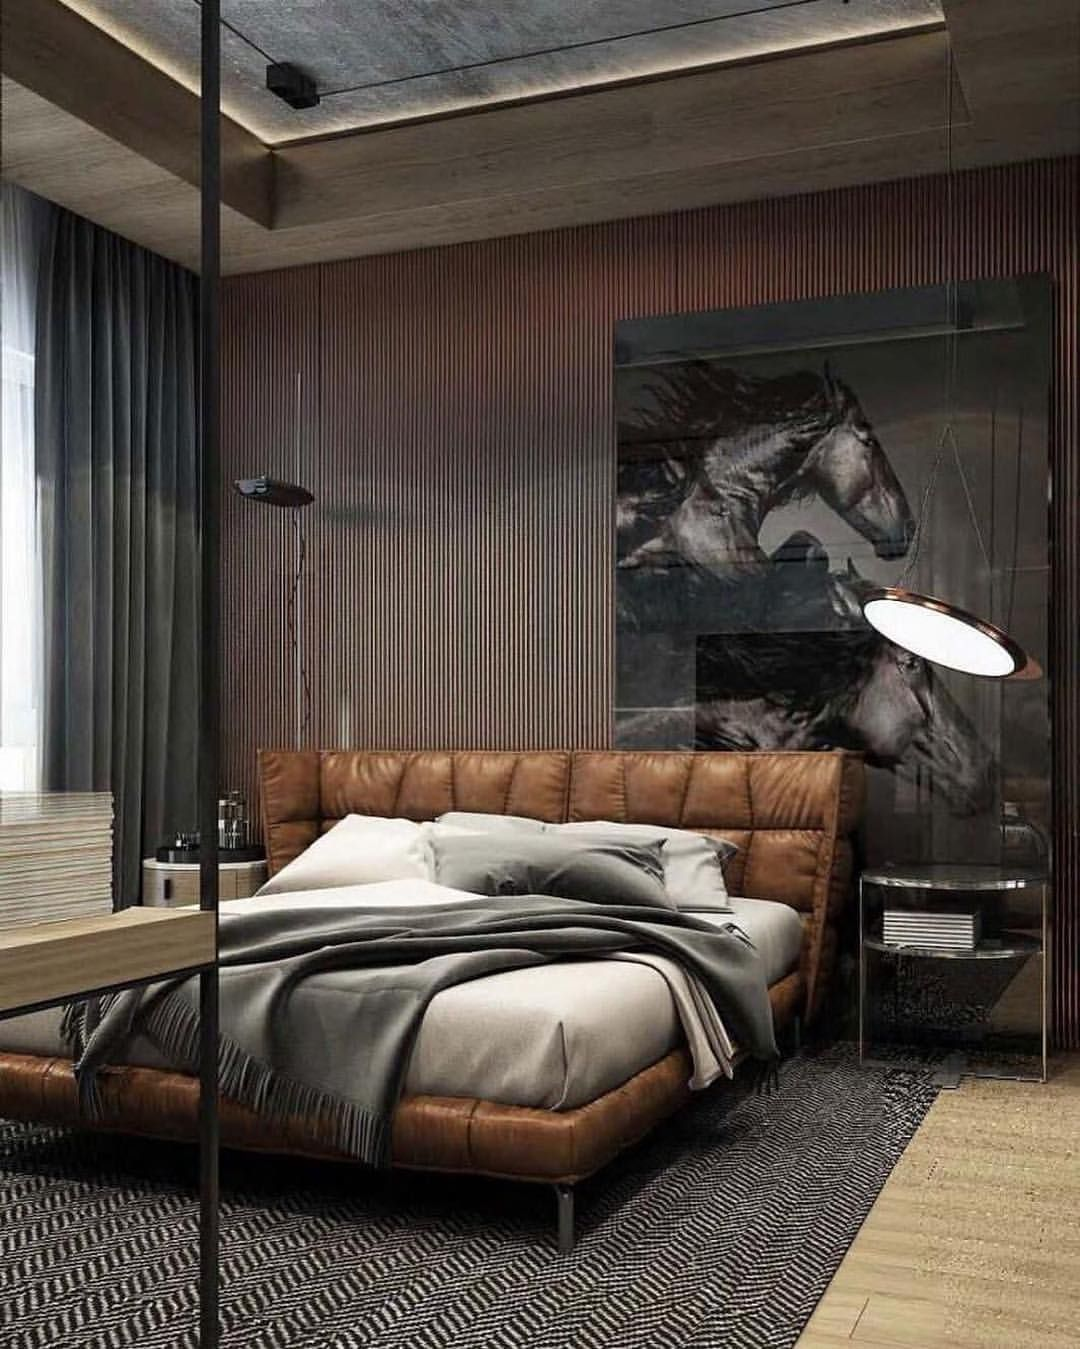 6 047 Likes 27 Comments Interior Design Design Interior Homes On Instagram Bachelor Pad By Yode Men S Bedroom Design Leather Bedroom Luxurious Bedrooms